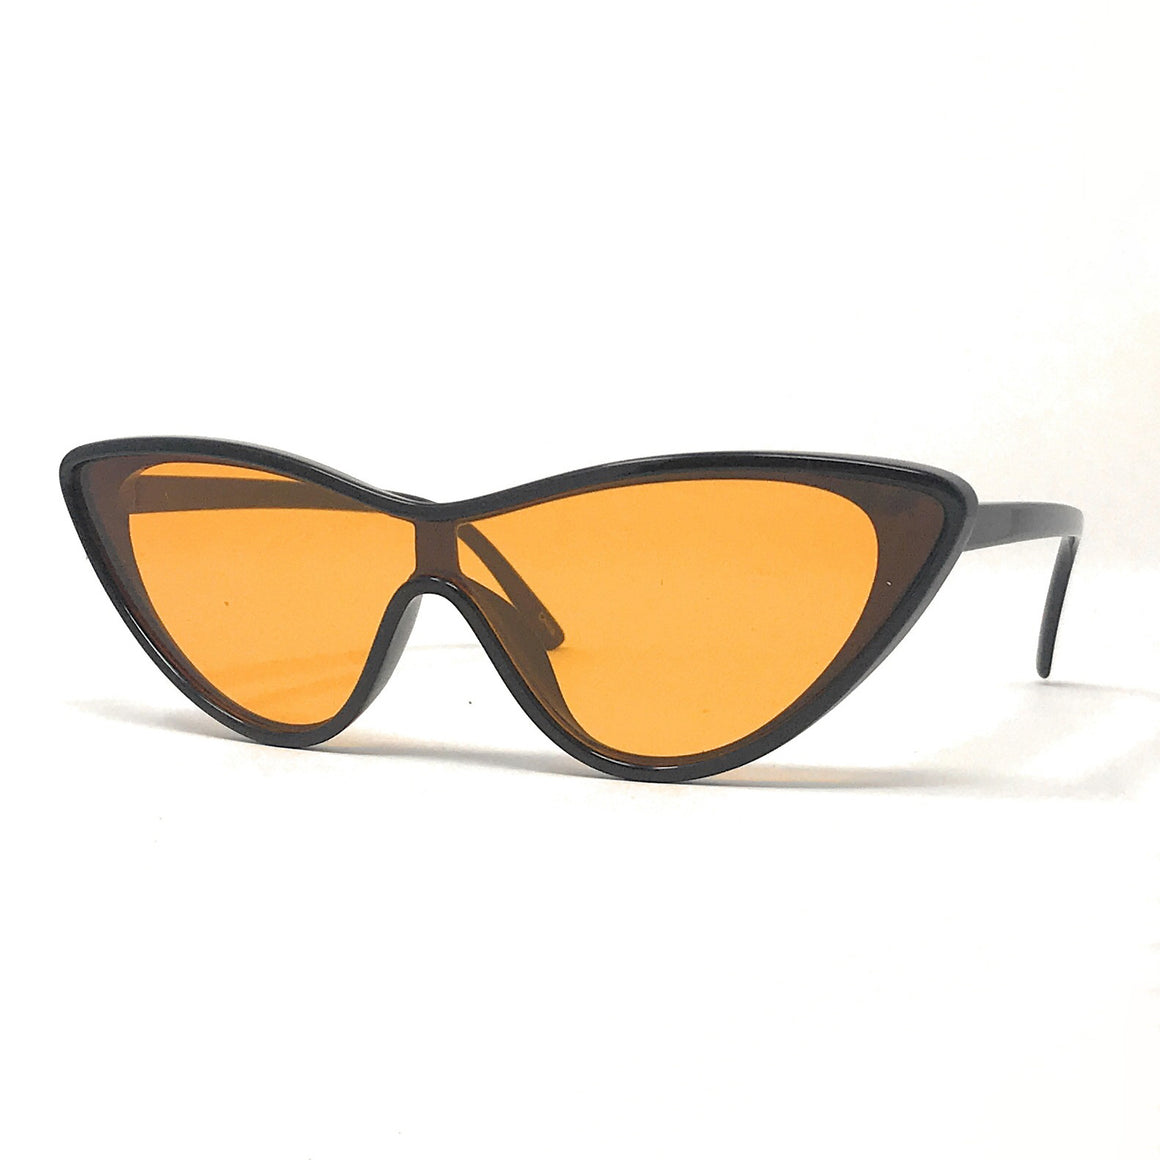 Black and Yellow 1950s Vintage Sunglasses - Pretty Kitty Fashion